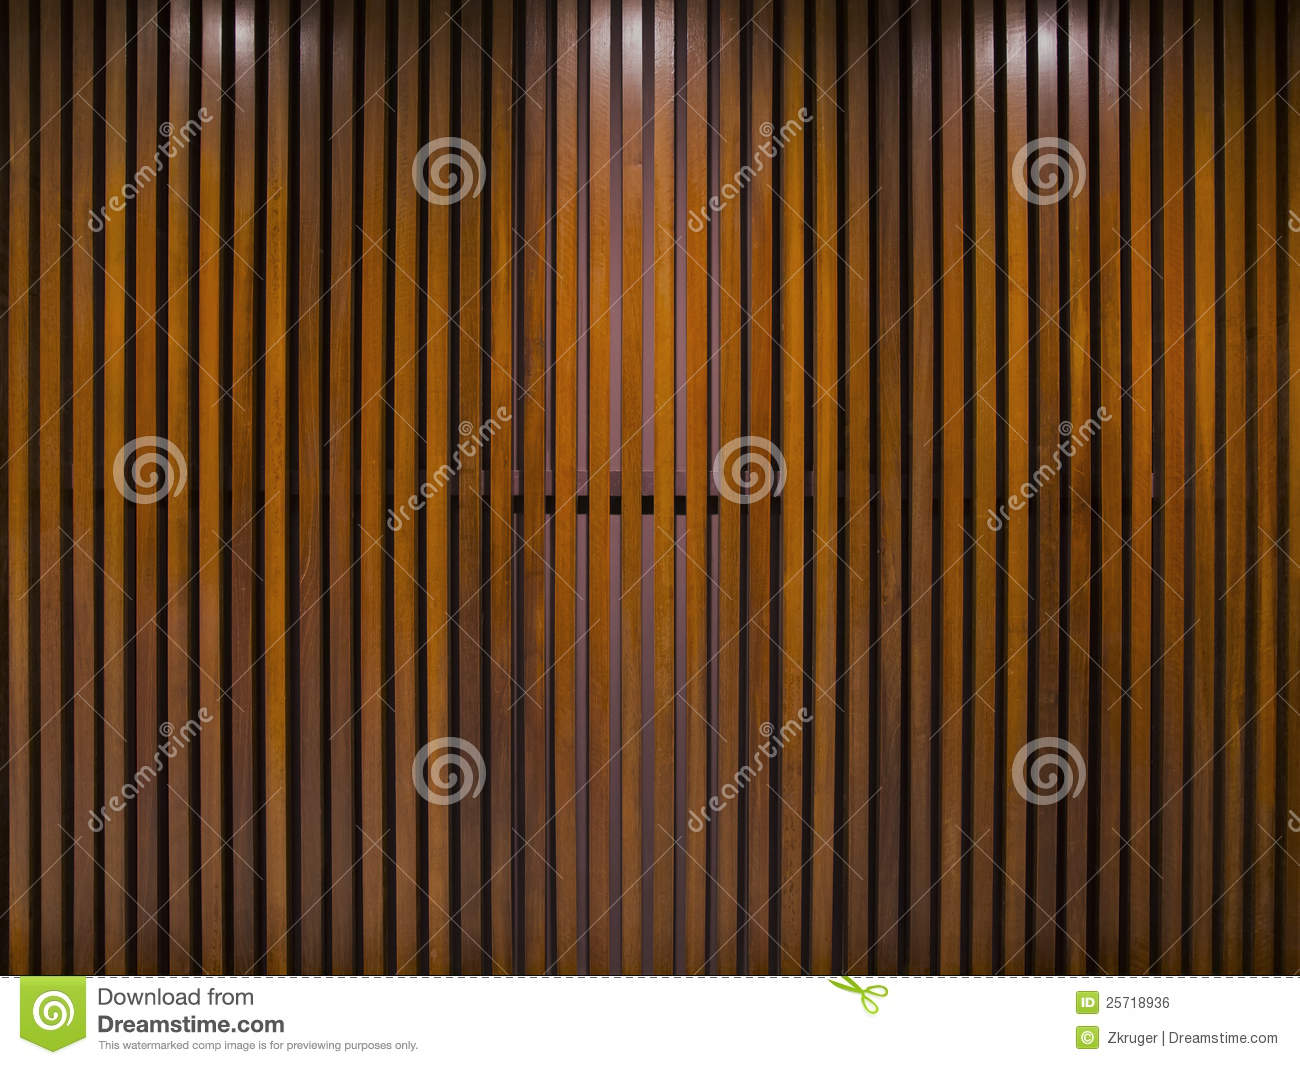 Wooden Wall Royalty Free Stock Image - Image: 25718936